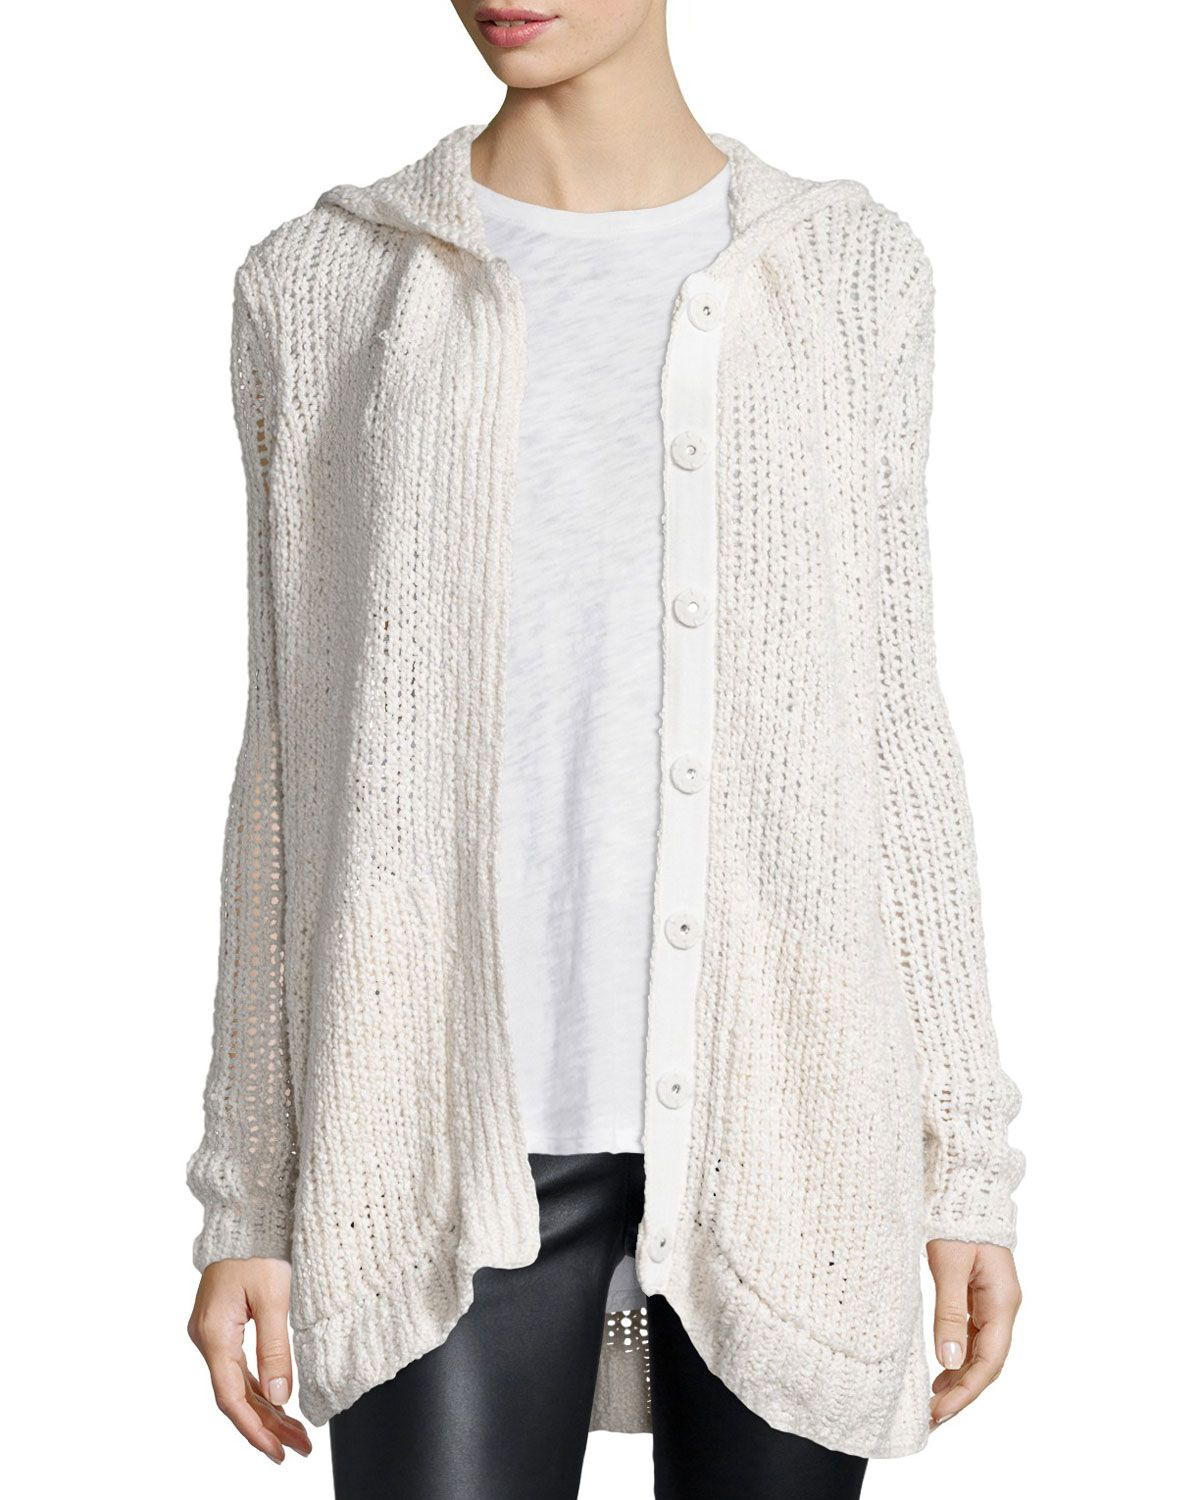 Hooded Oversize Button-Front Cardigan Sweater, Cream | Top ...